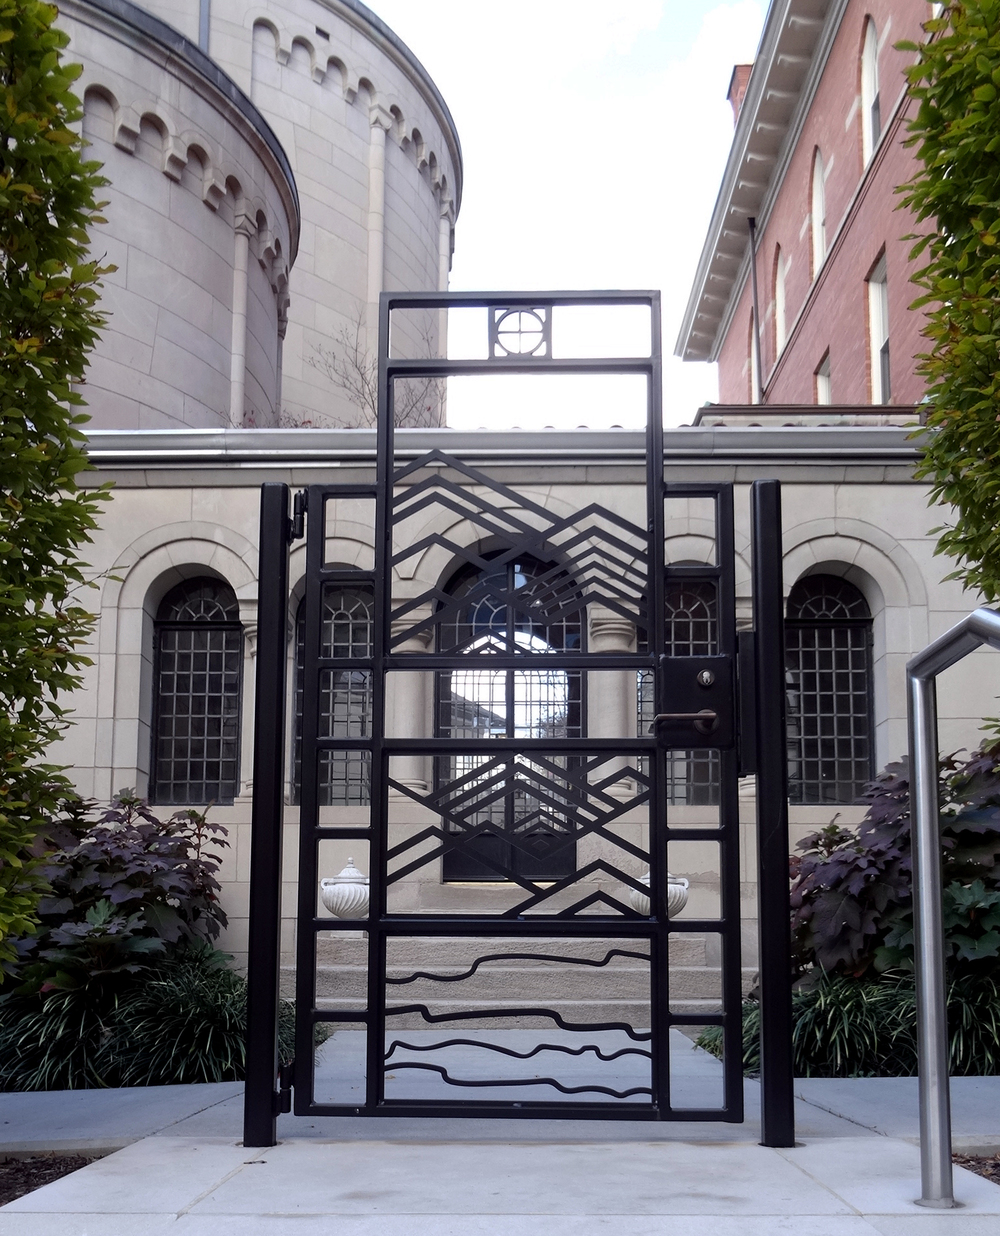 Catholic Campus Gate